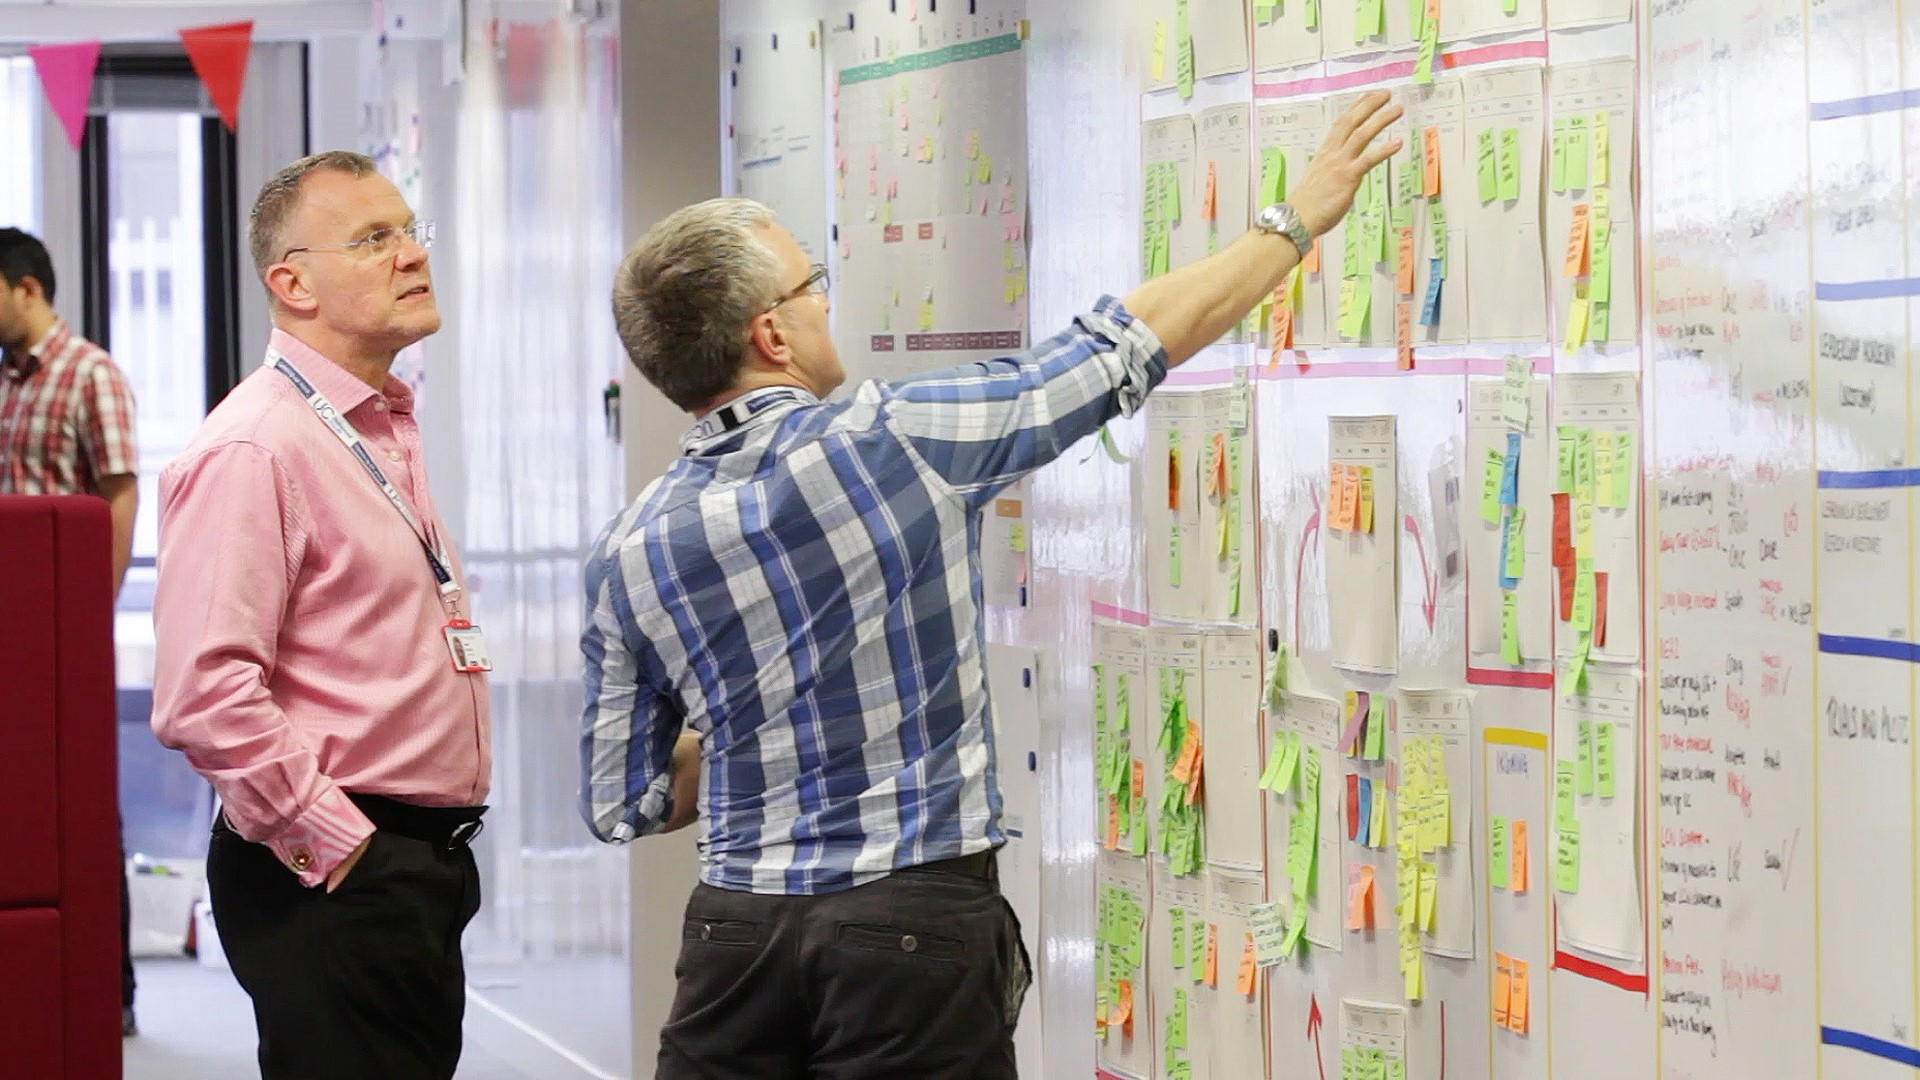 Image of two men looking at post-its on a whiteboard